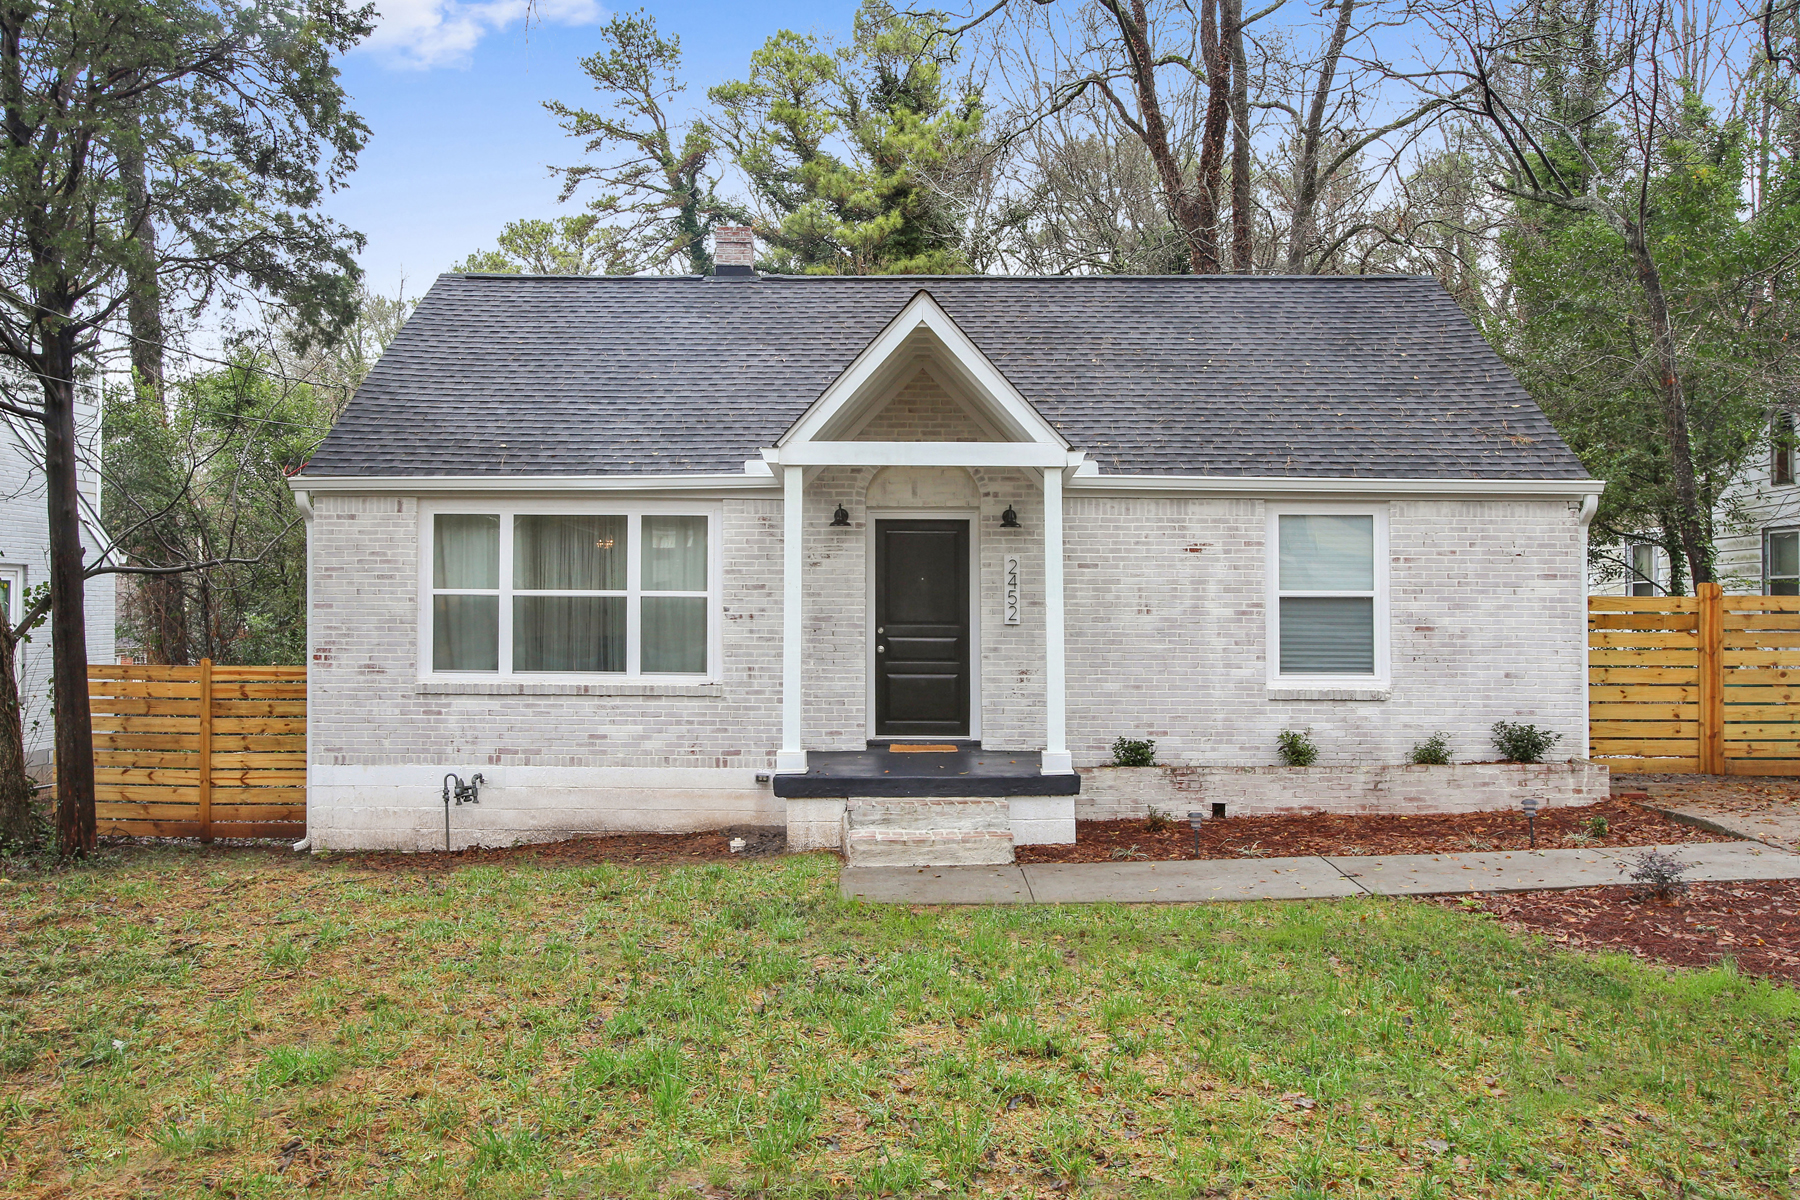 Fully Renovated East Lake Terrace Bungalow 2452 McAfee Road Decatur, Georgia 30032 Stati Uniti